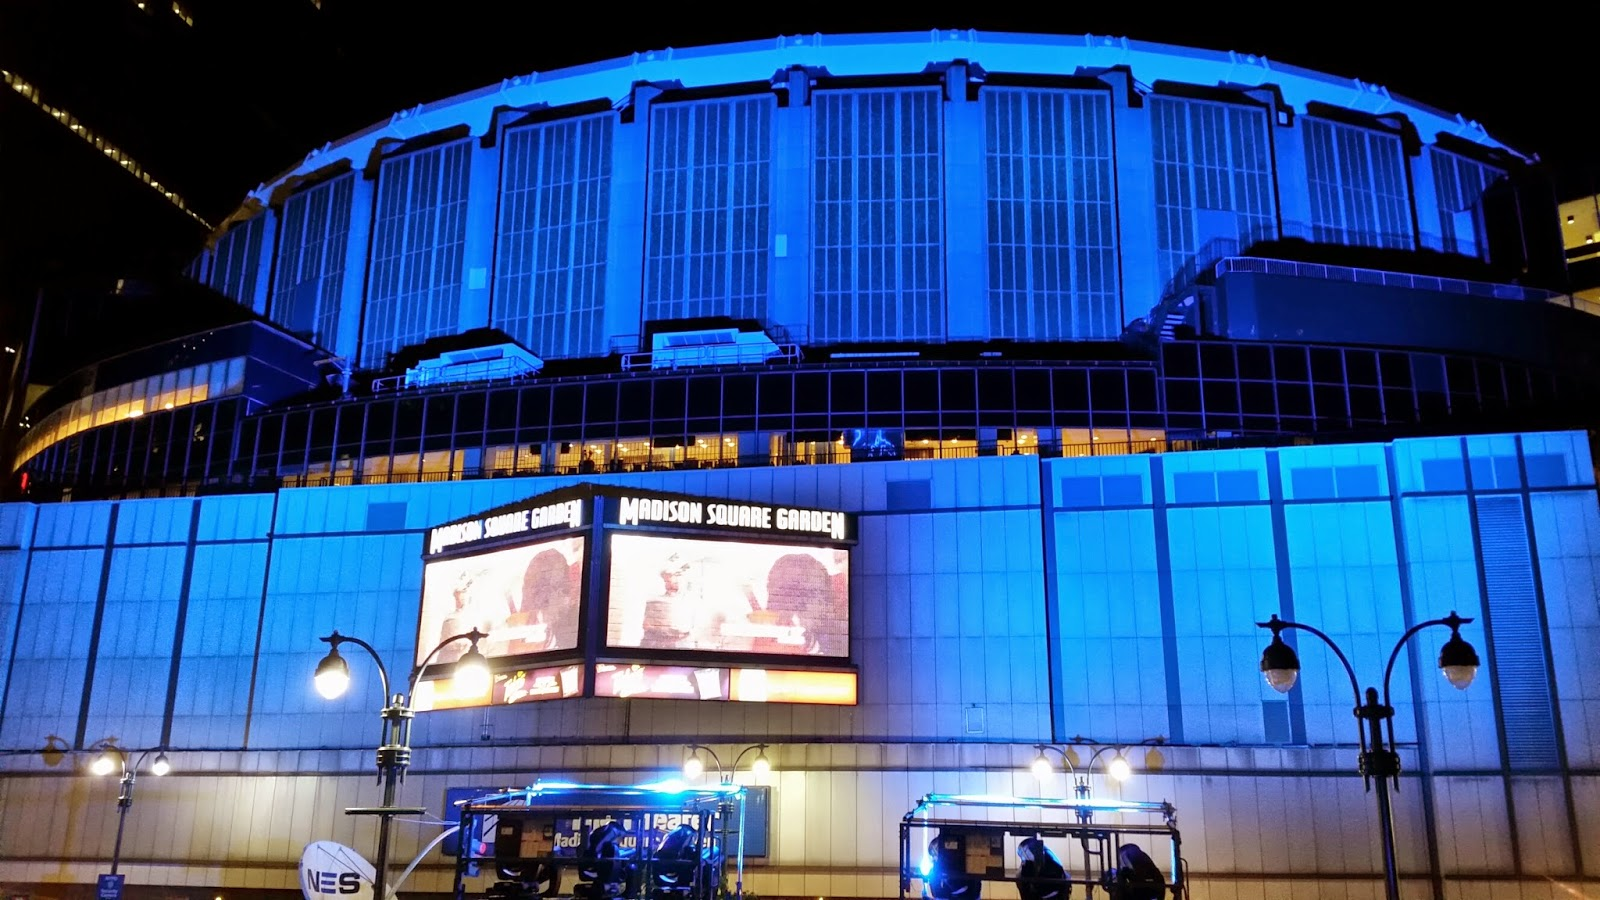 Barbizon lights up madison square garden for the stanley for Lights company